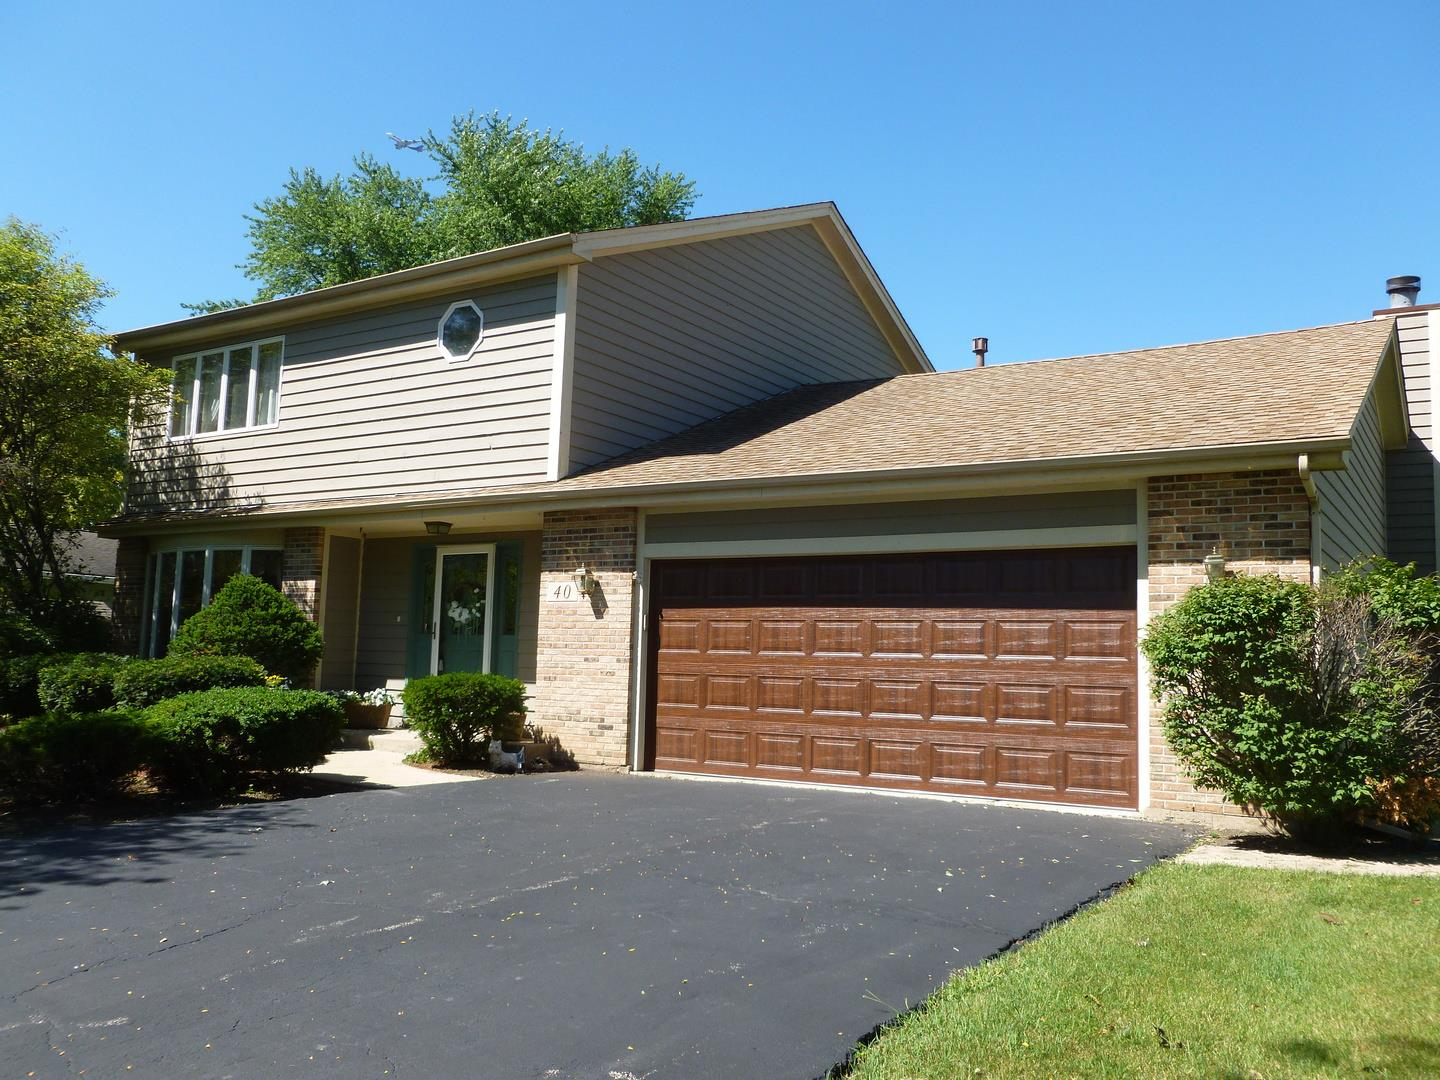 40 Rodenburg Road, Roselle, IL 60172 - #: 10941626